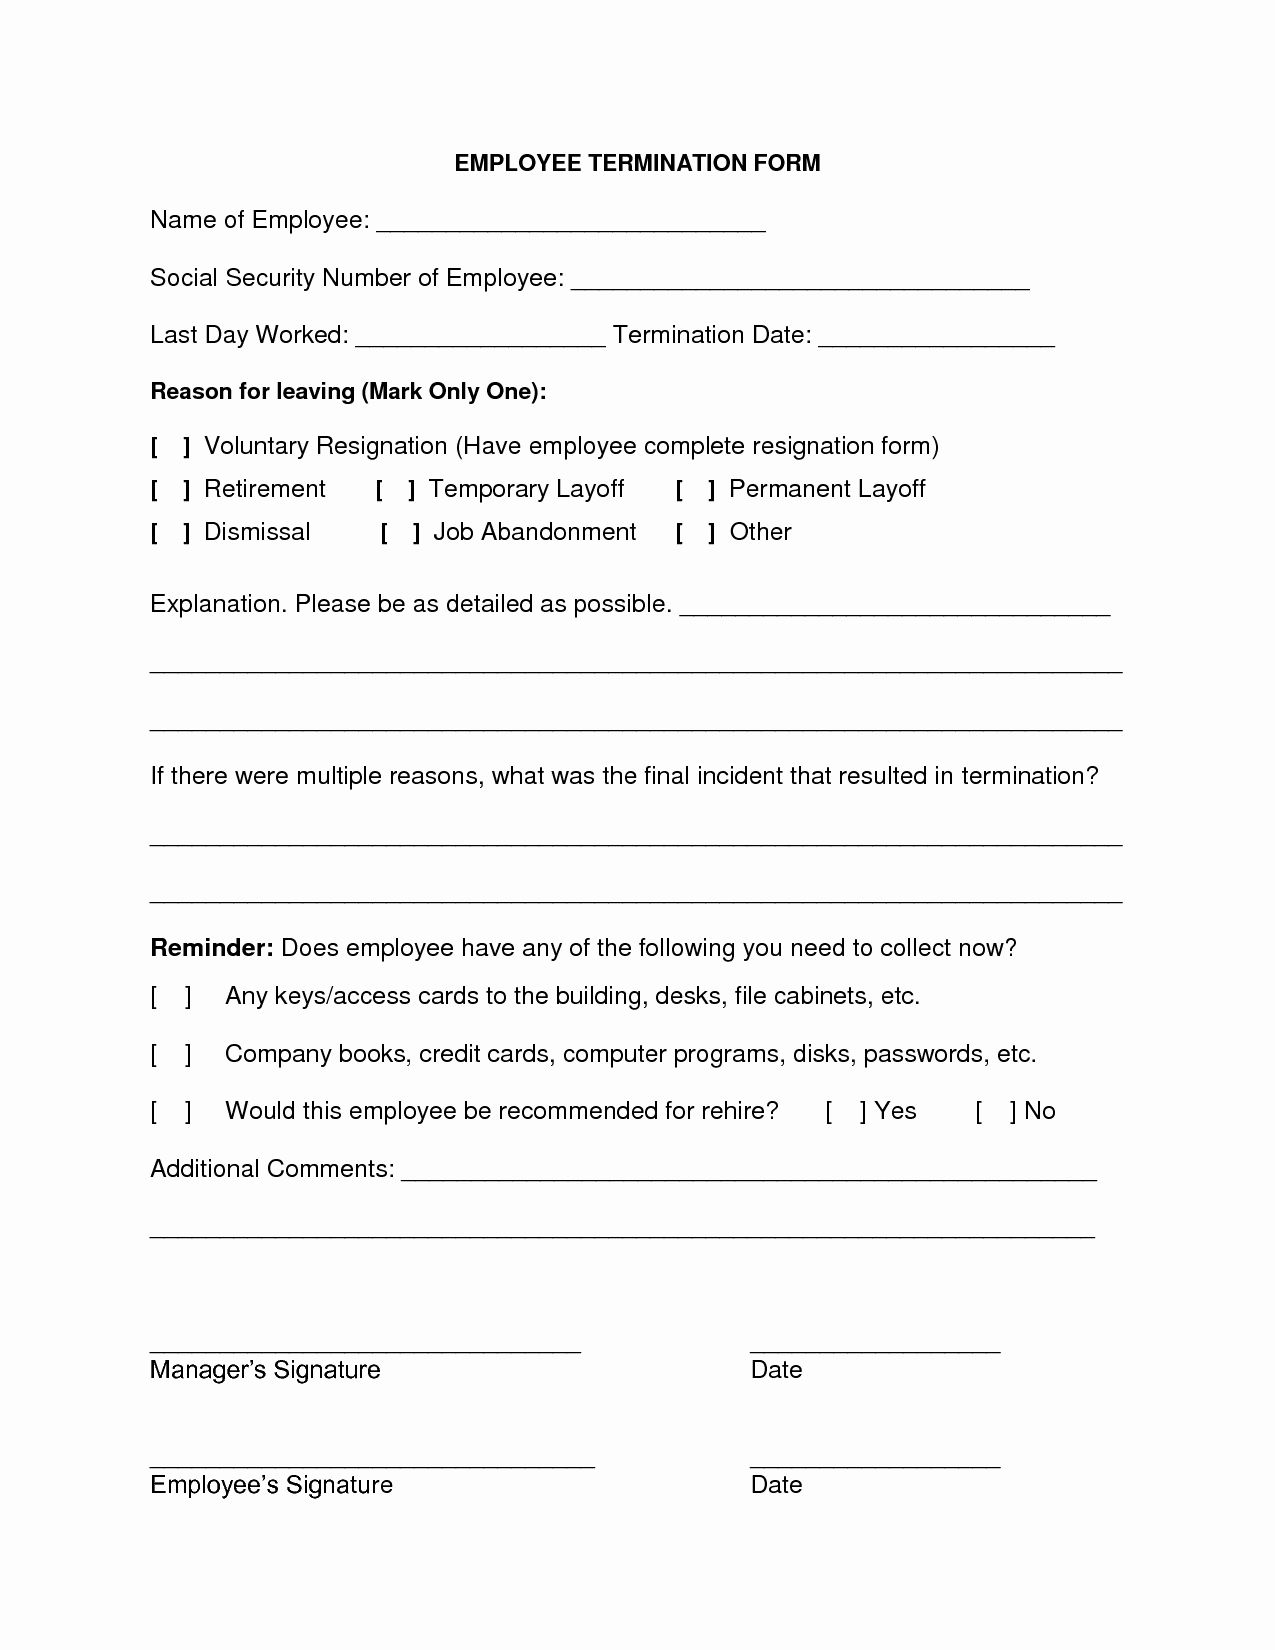 Employee Termination Form Template Fresh 9 Best Of Employee Termination Notice Form Free Separation Agreement Template Corporate Credit Card Templates